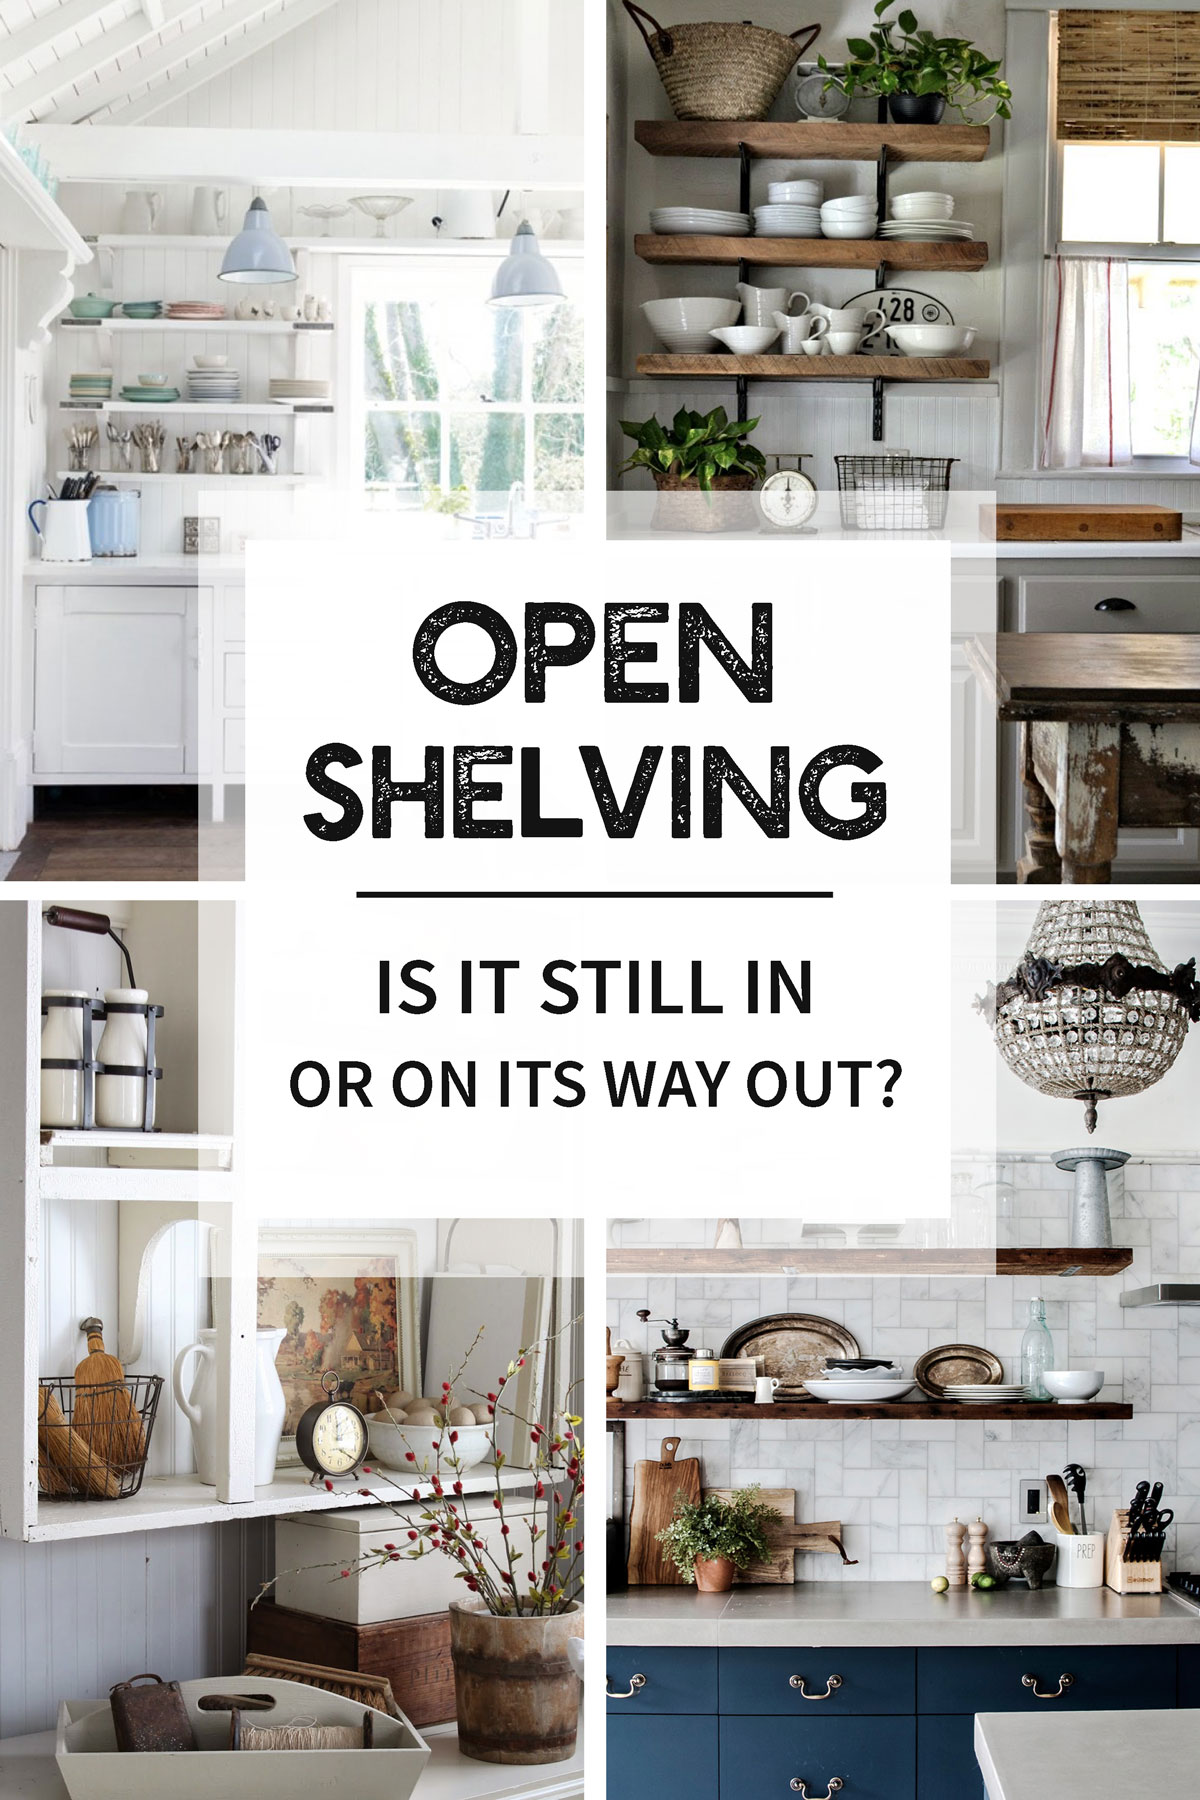 Attrayant Open Shelving: Is It Still In, Or On Its Way Out? Compelling Opinions